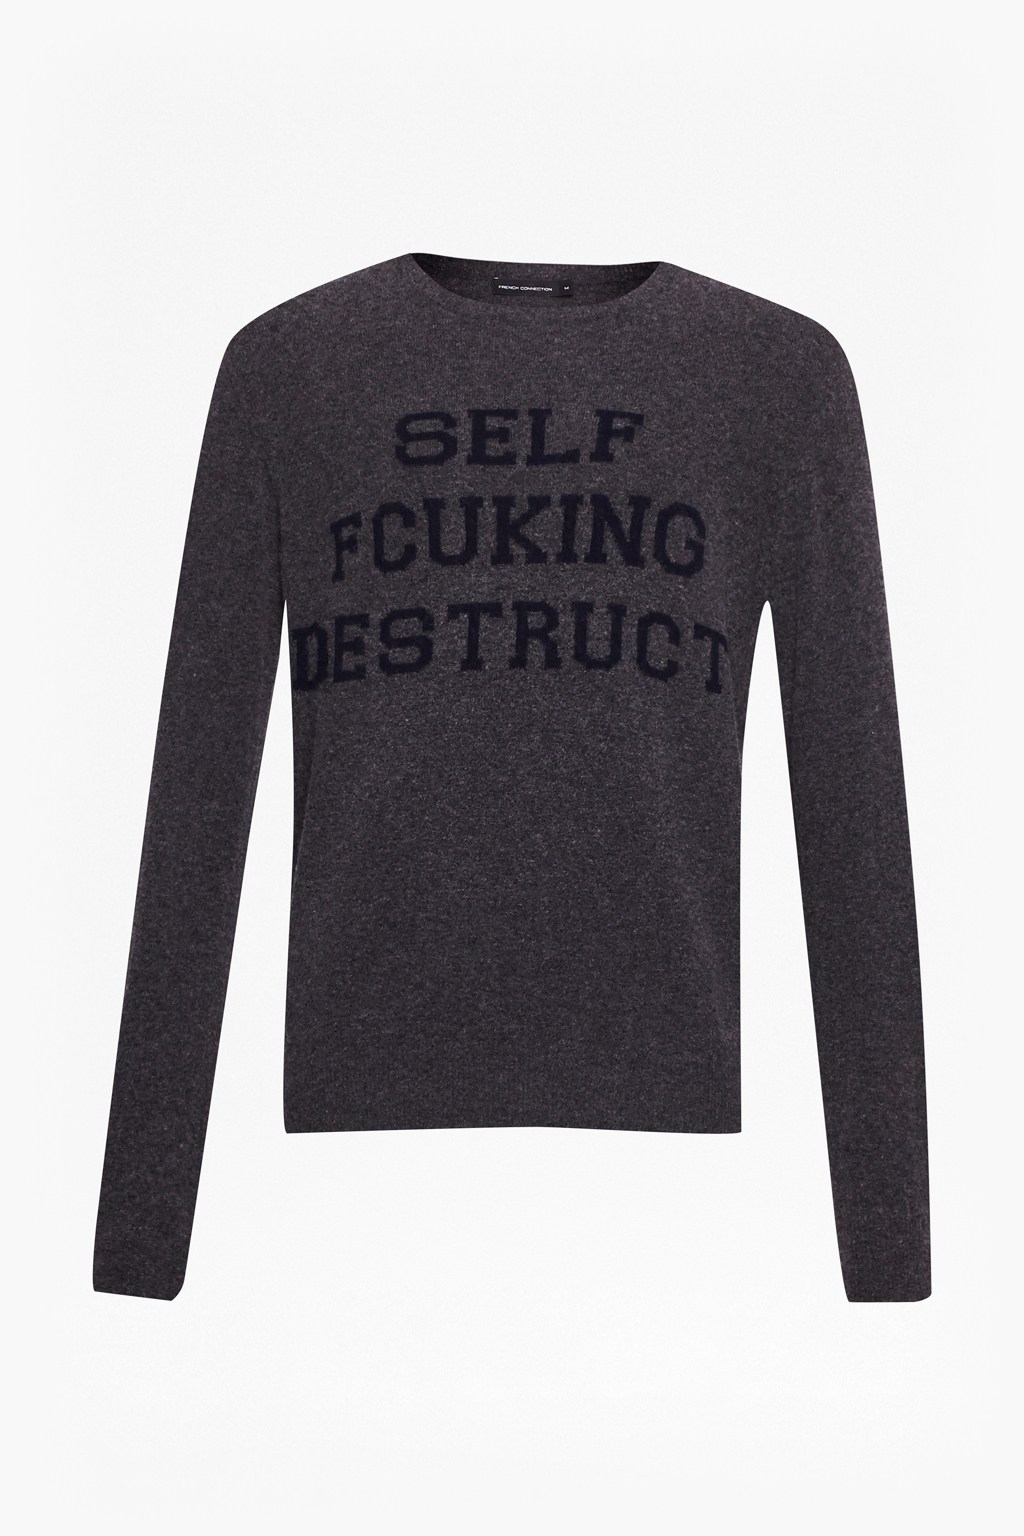 Self Fcuking Desruct Knits Jumper